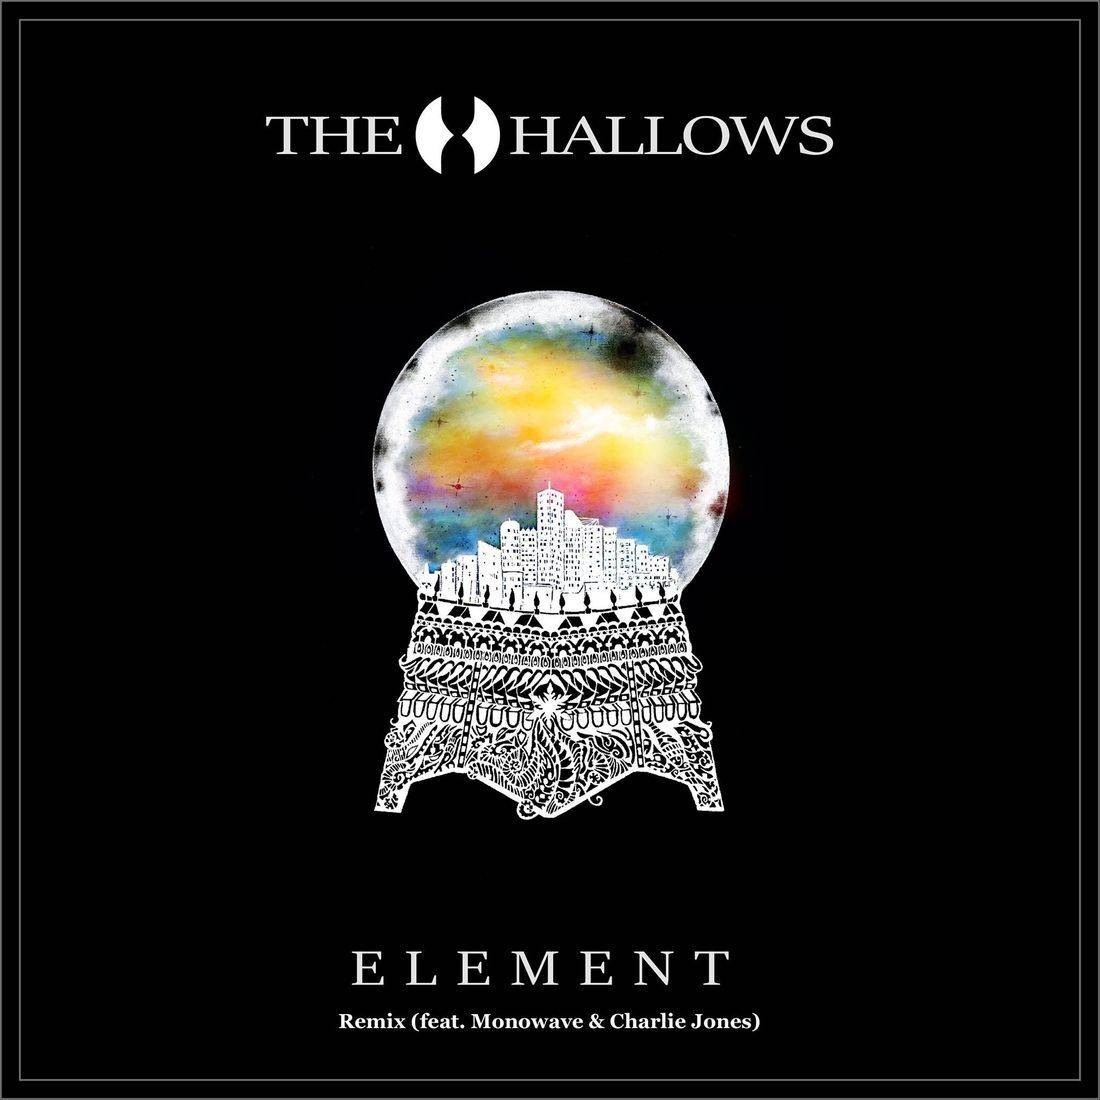 The Hallows Element